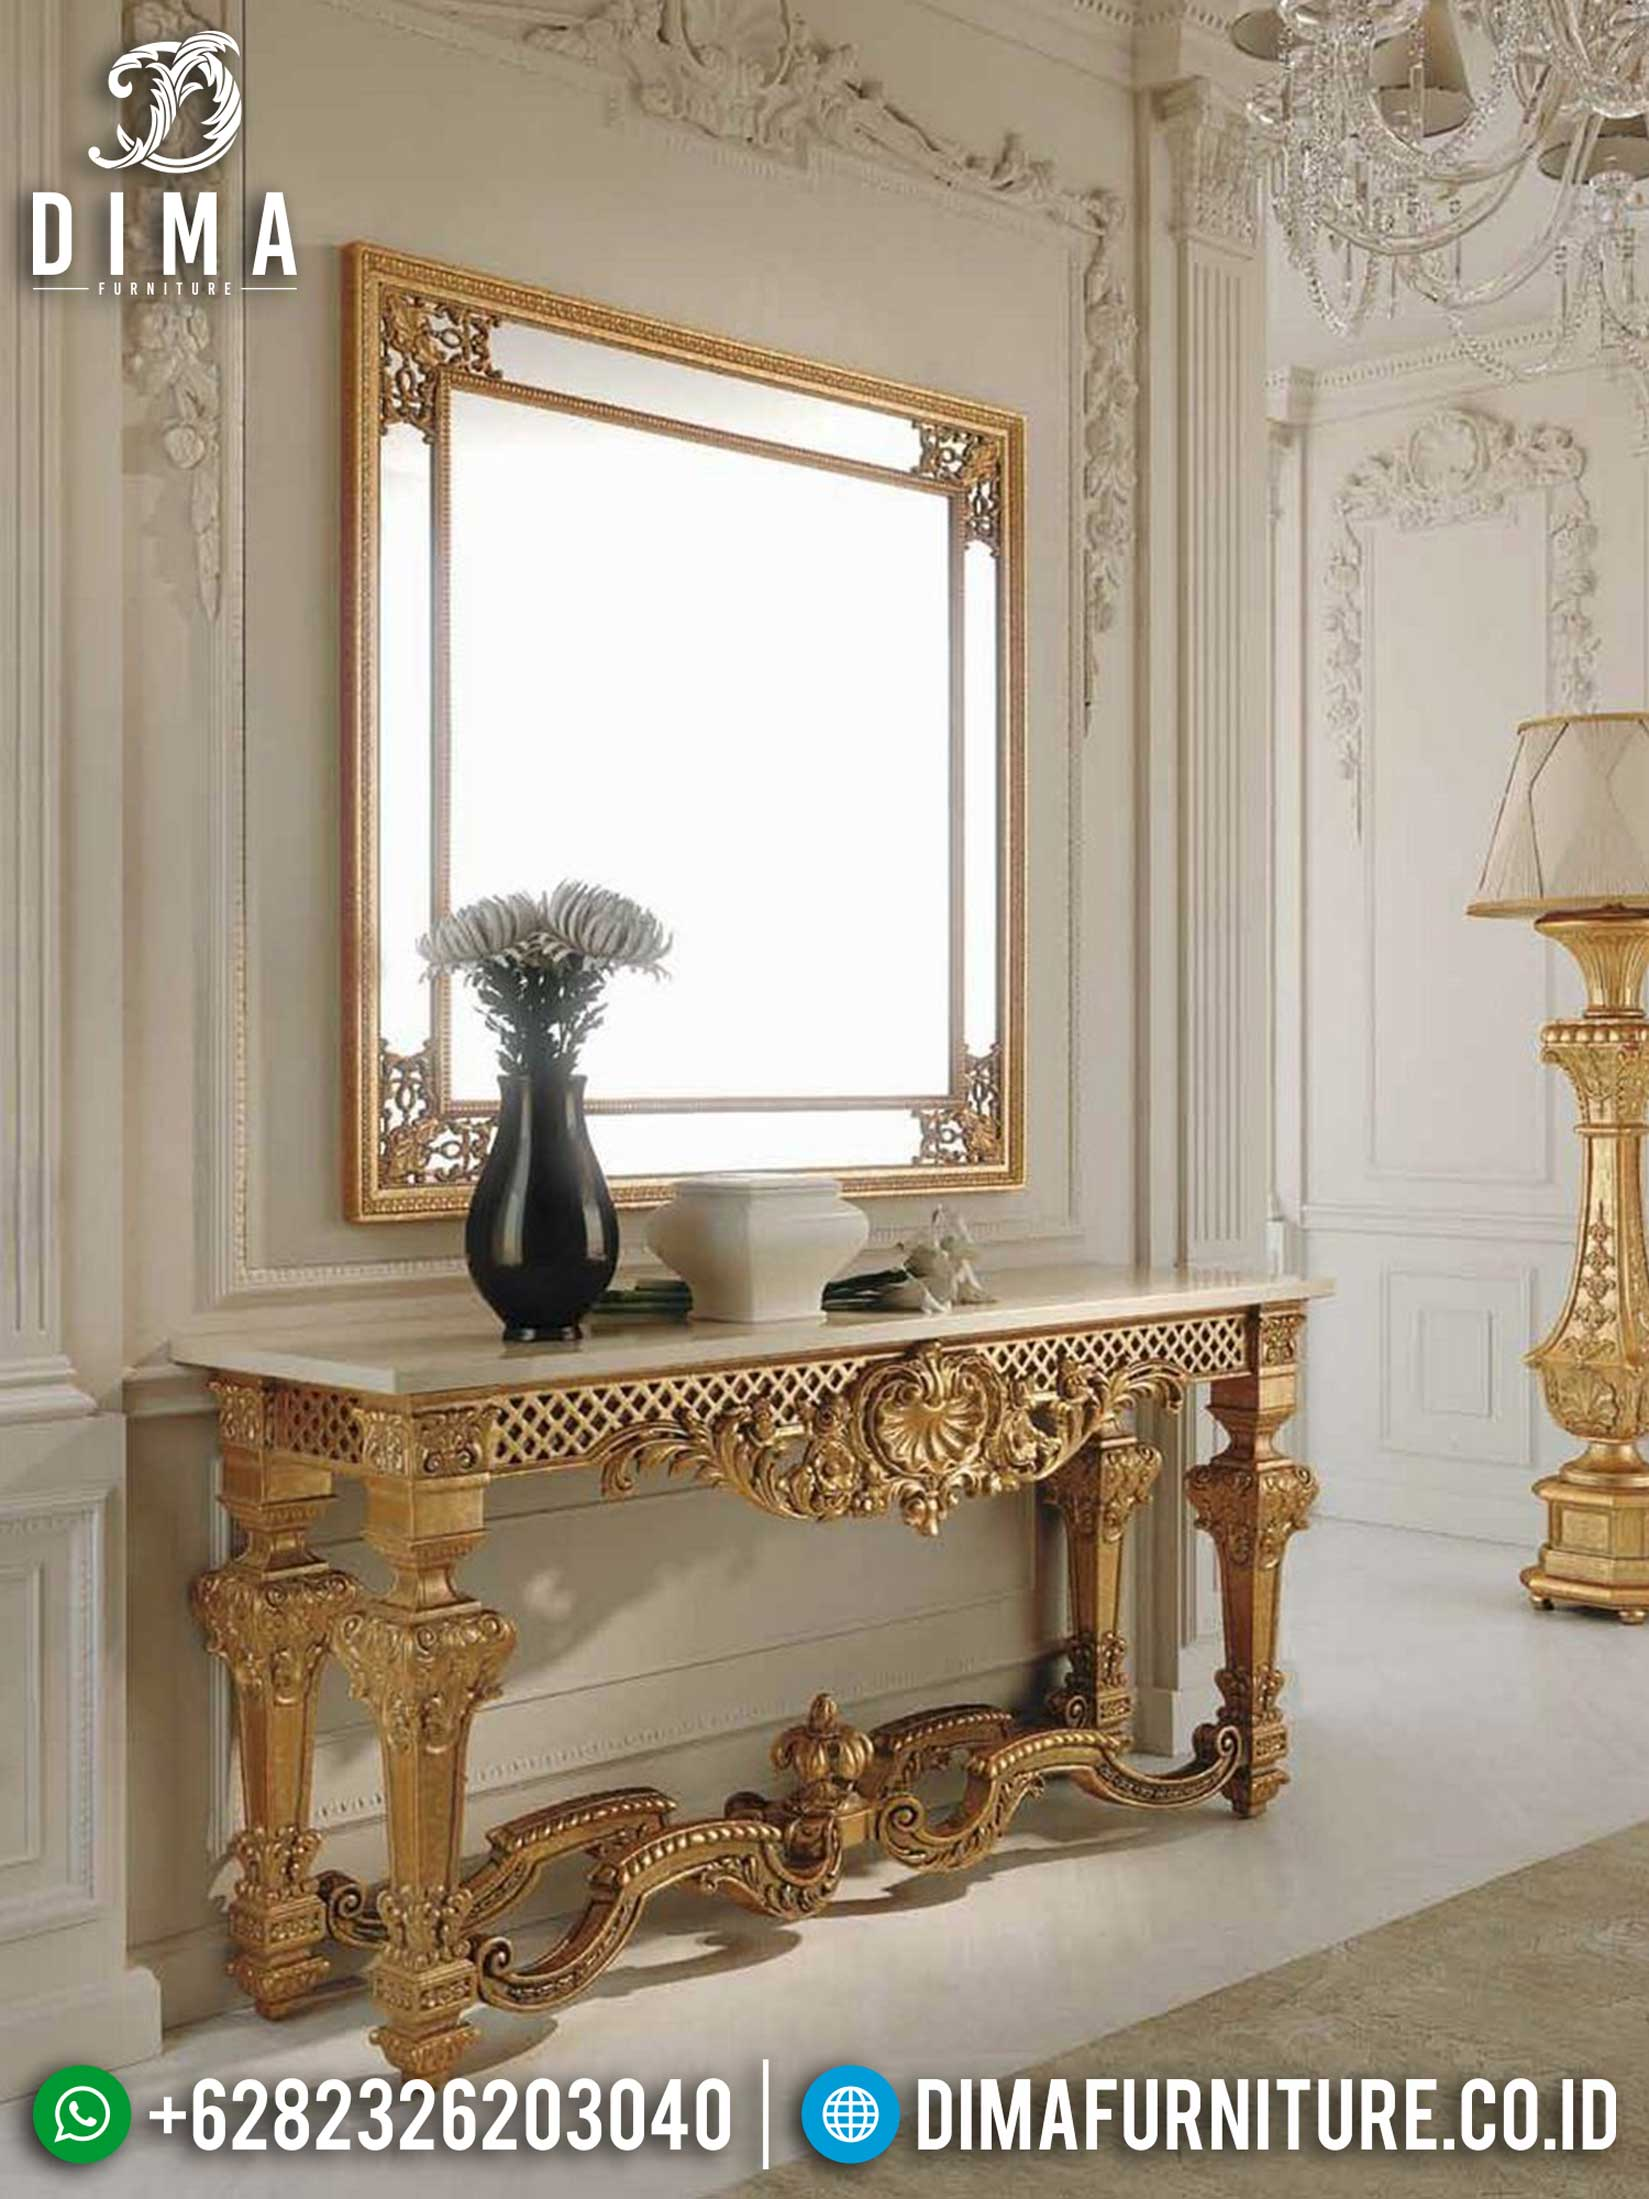 Classic Luxury Meja Konsol Mewah Ukir Jepara Golden Light Glossy New Mebel Jepara Mm-0804